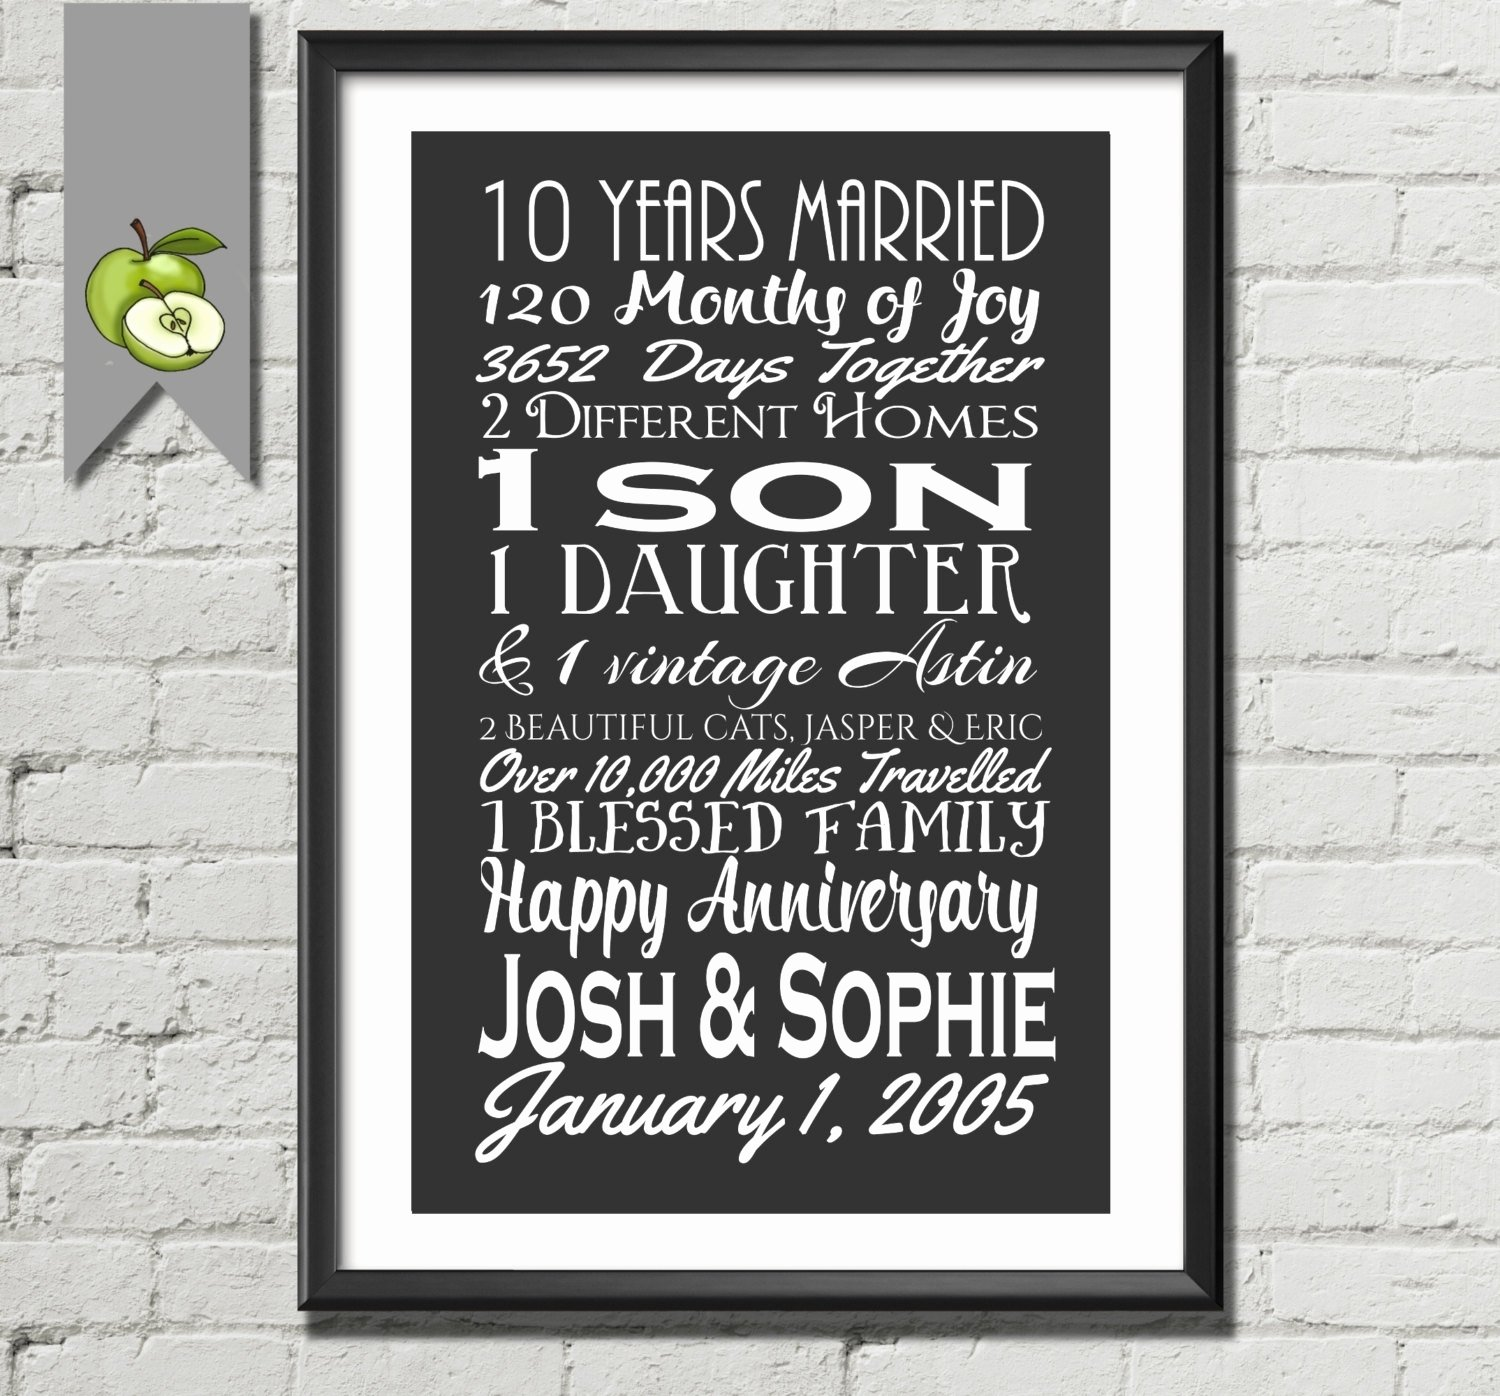 10 Awesome 10 Year Anniversary Ideas For Him 10 year wedding anniversary gift for husband unique 10th anniversary 2 2021